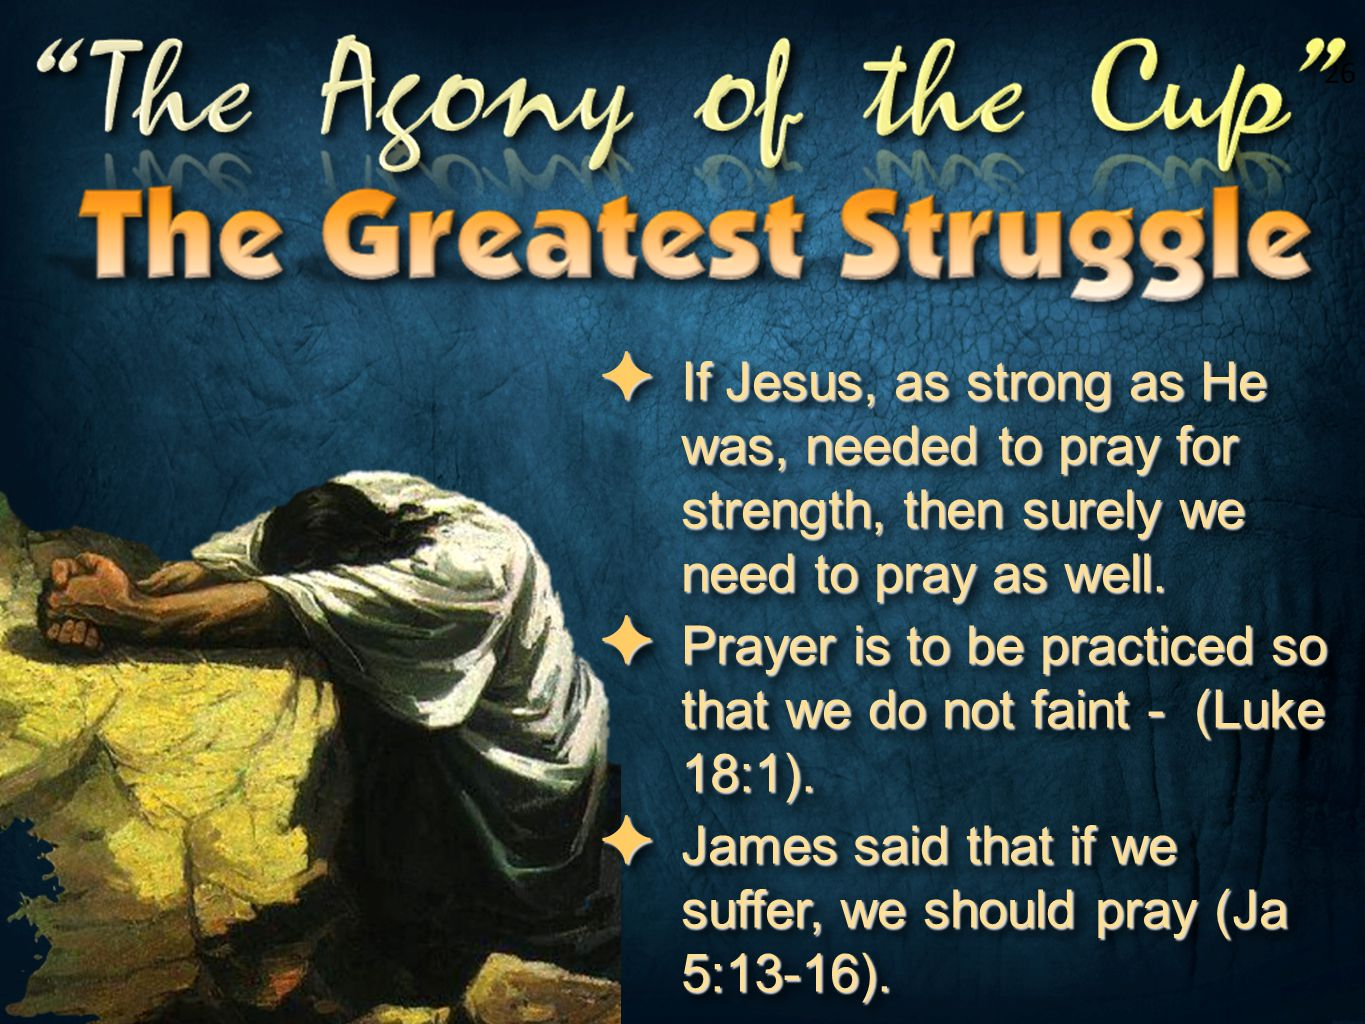 Prayer is to be practiced so that we do not faint - (Luke 18:1).